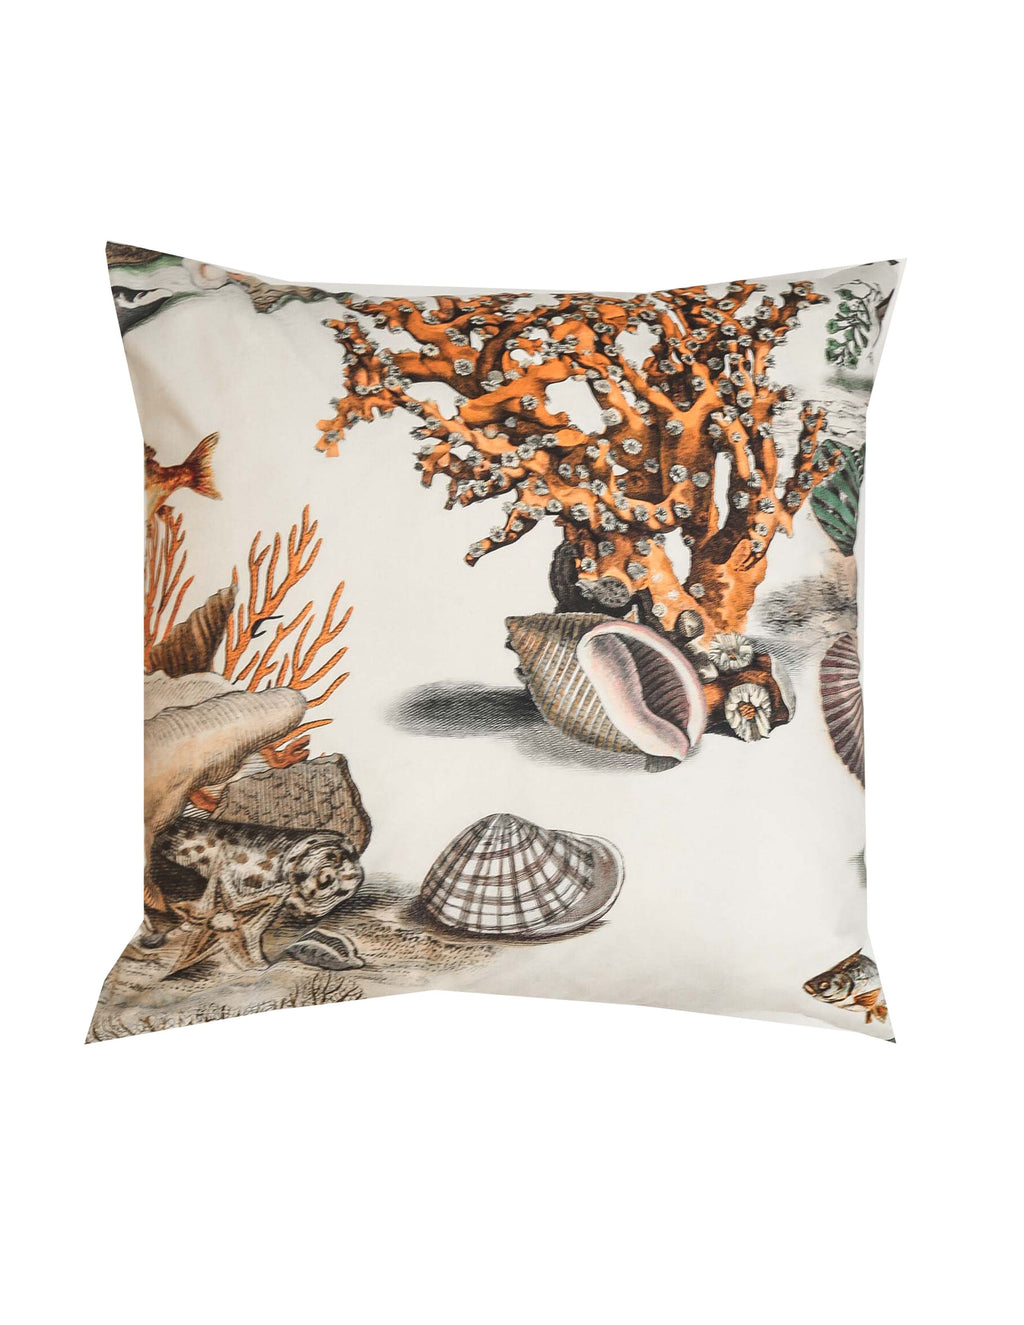 Signature Coral and Shell Cushion